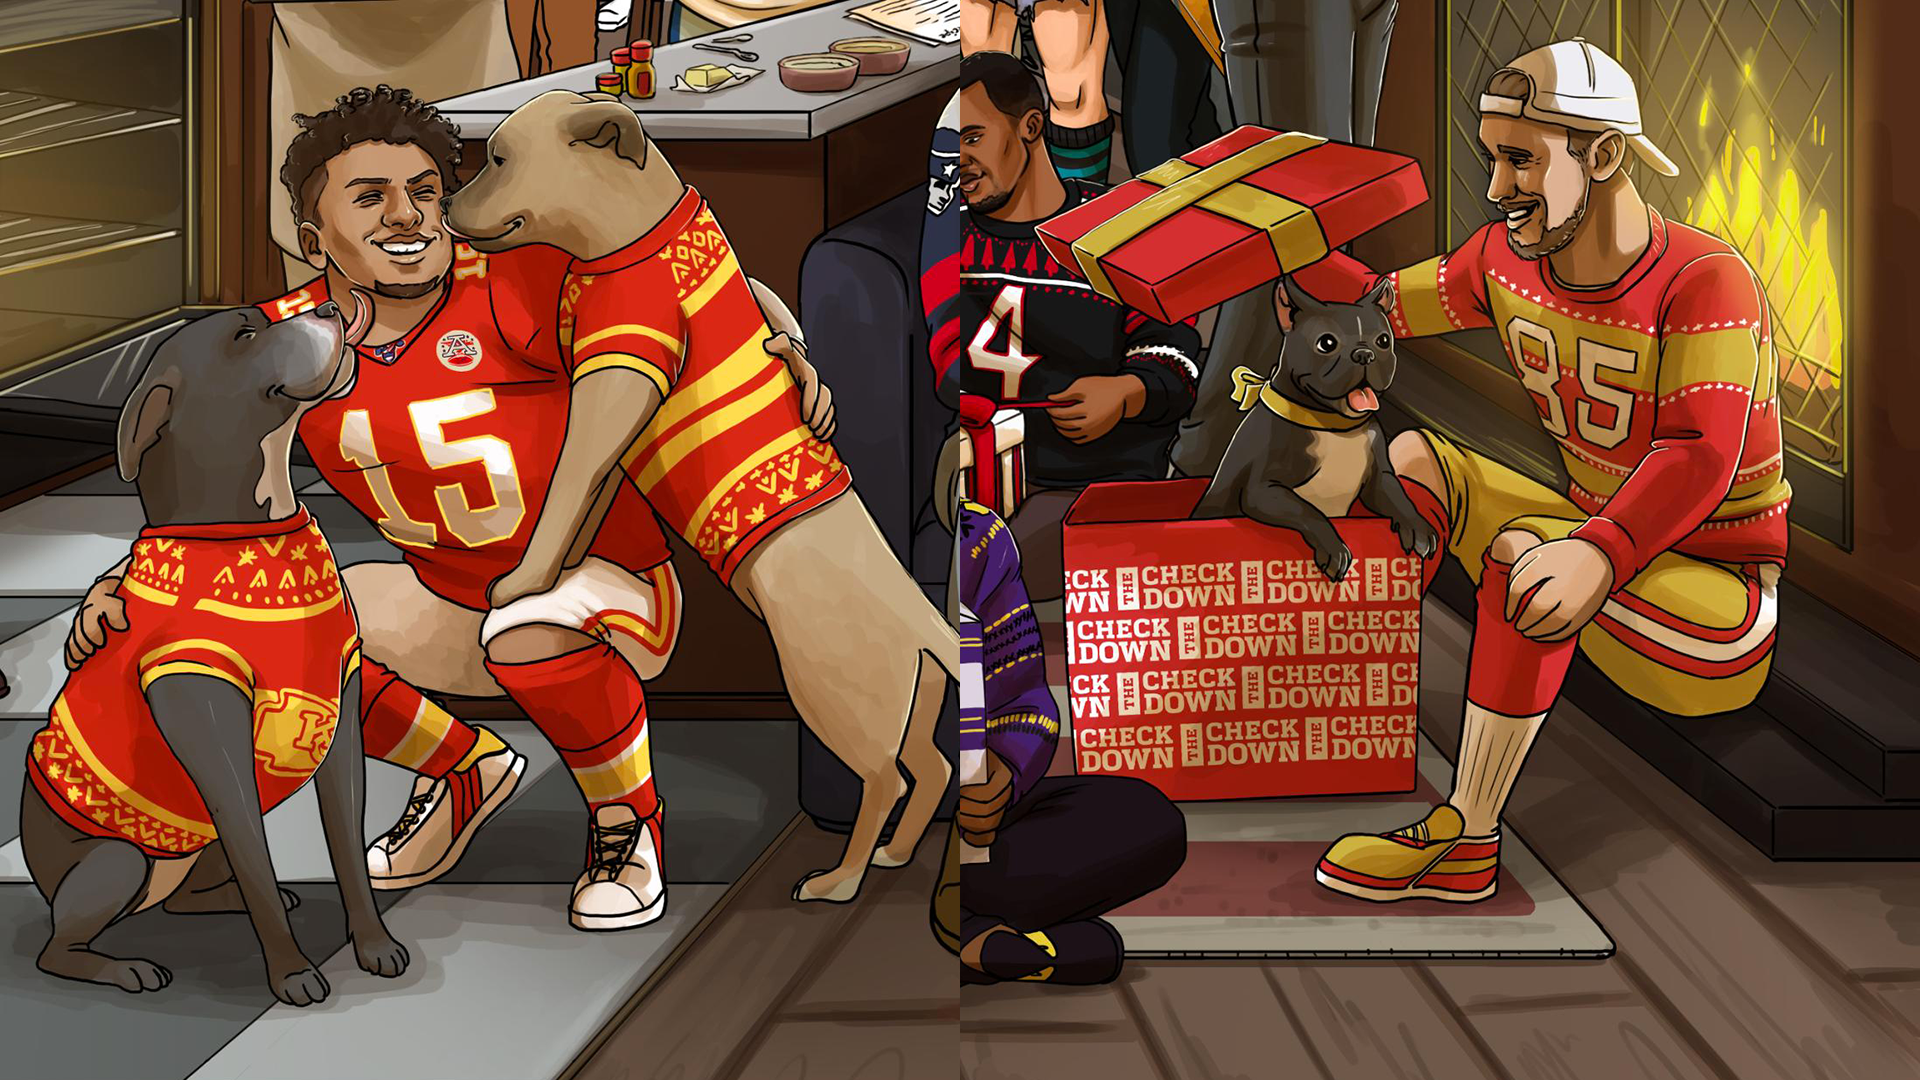 Did this NFL Christmas graphic predict the 49ers and Chiefs would 1920x1080